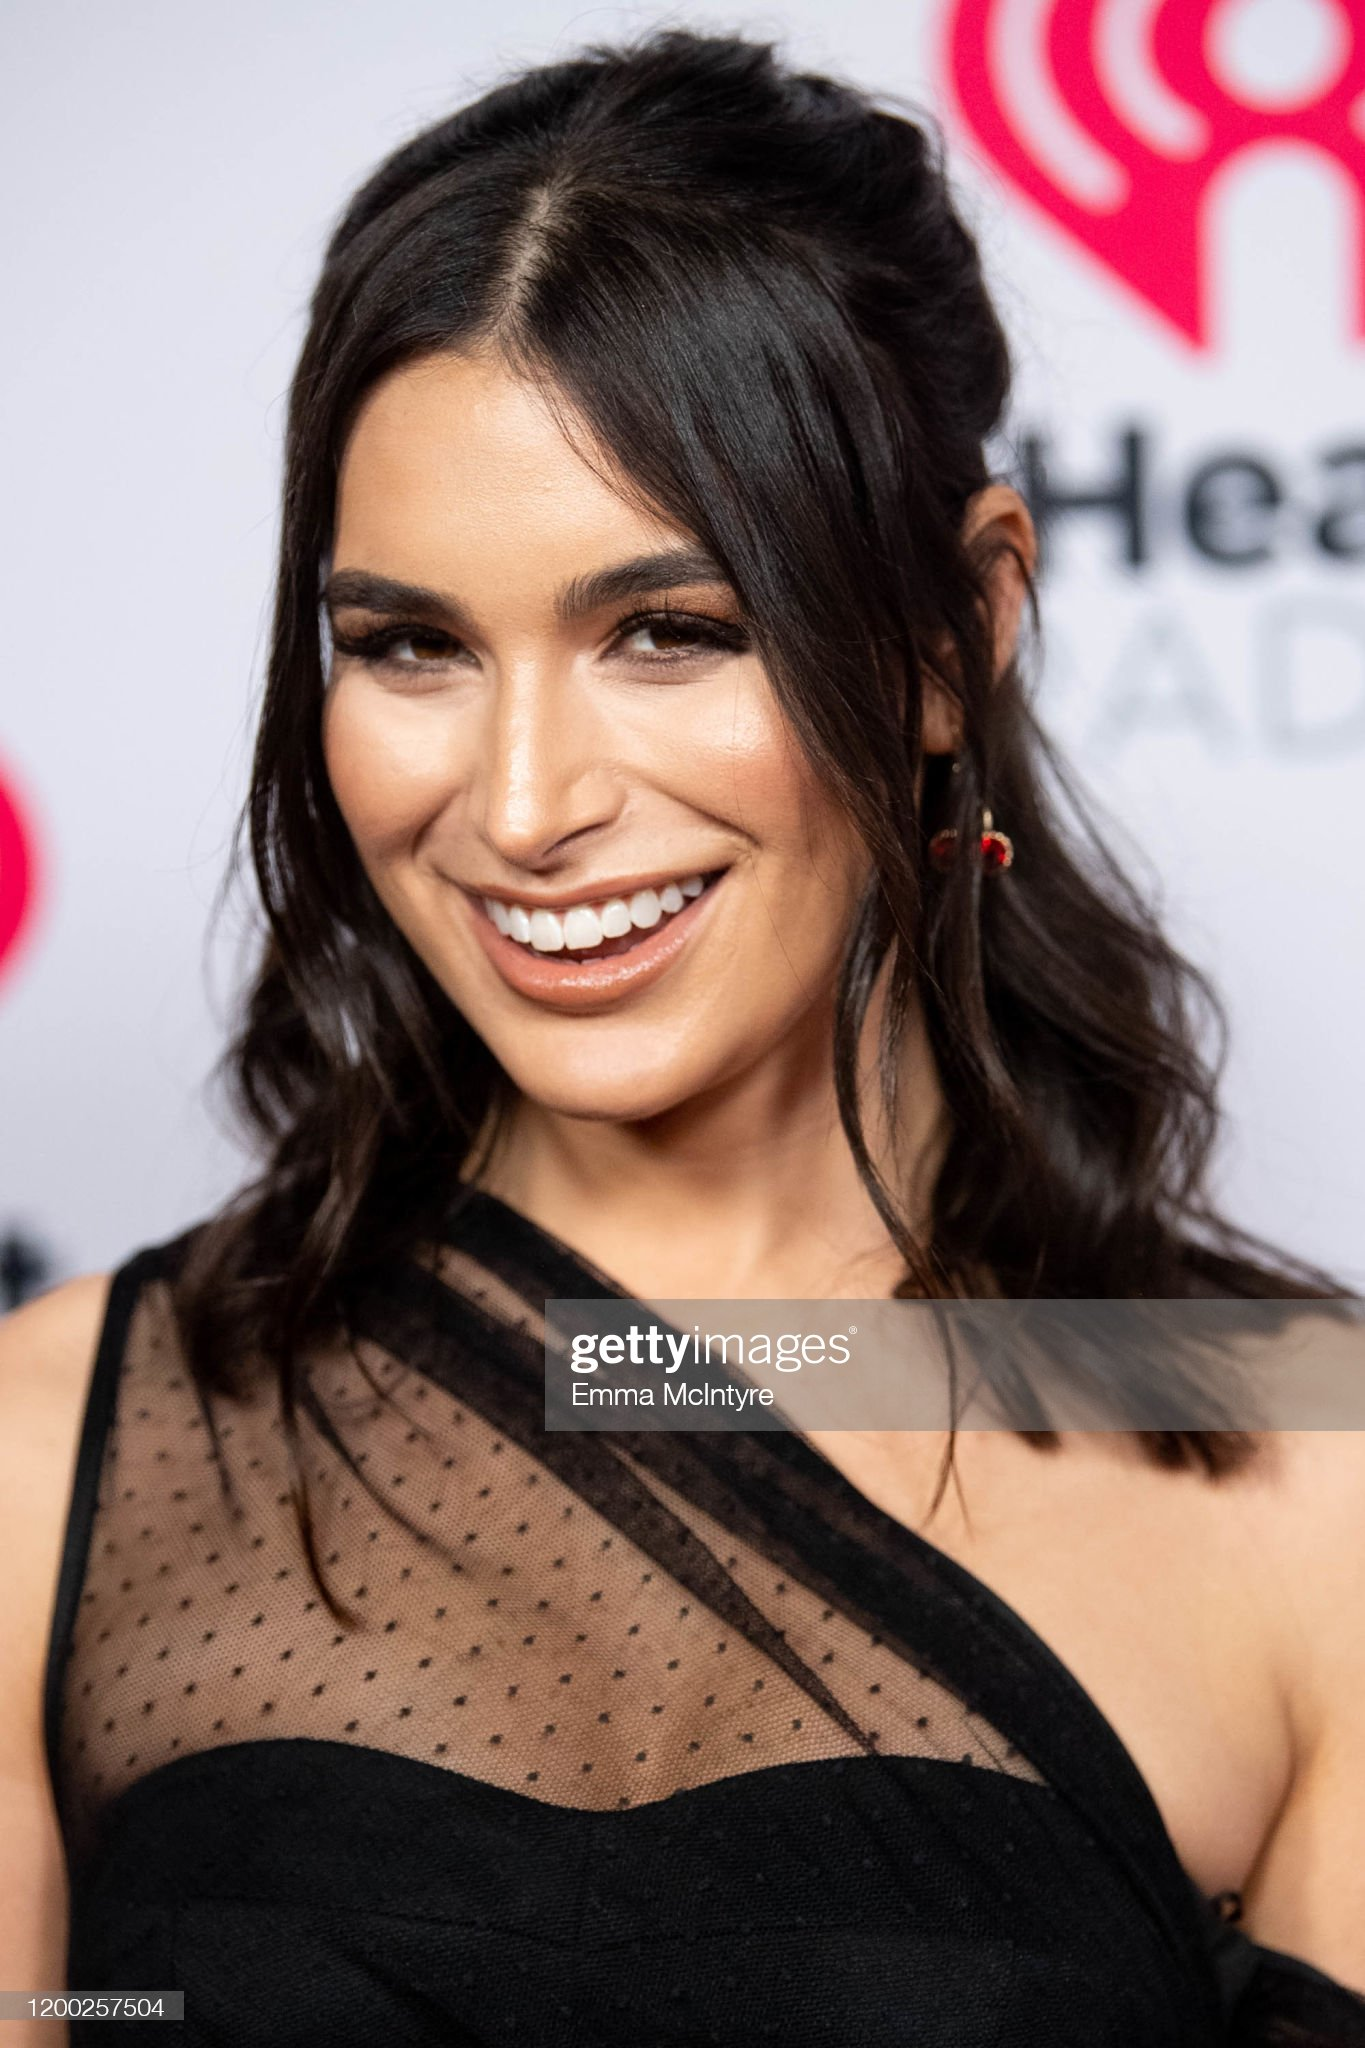 Ashley Iaconetti Haibon & Jared Haibon - Discussion - Page 62 Ashley-iaconetti-haibon-arrives-at-the-2020-iheartradio-podcast-at-picture-id1200257504?s=2048x2048